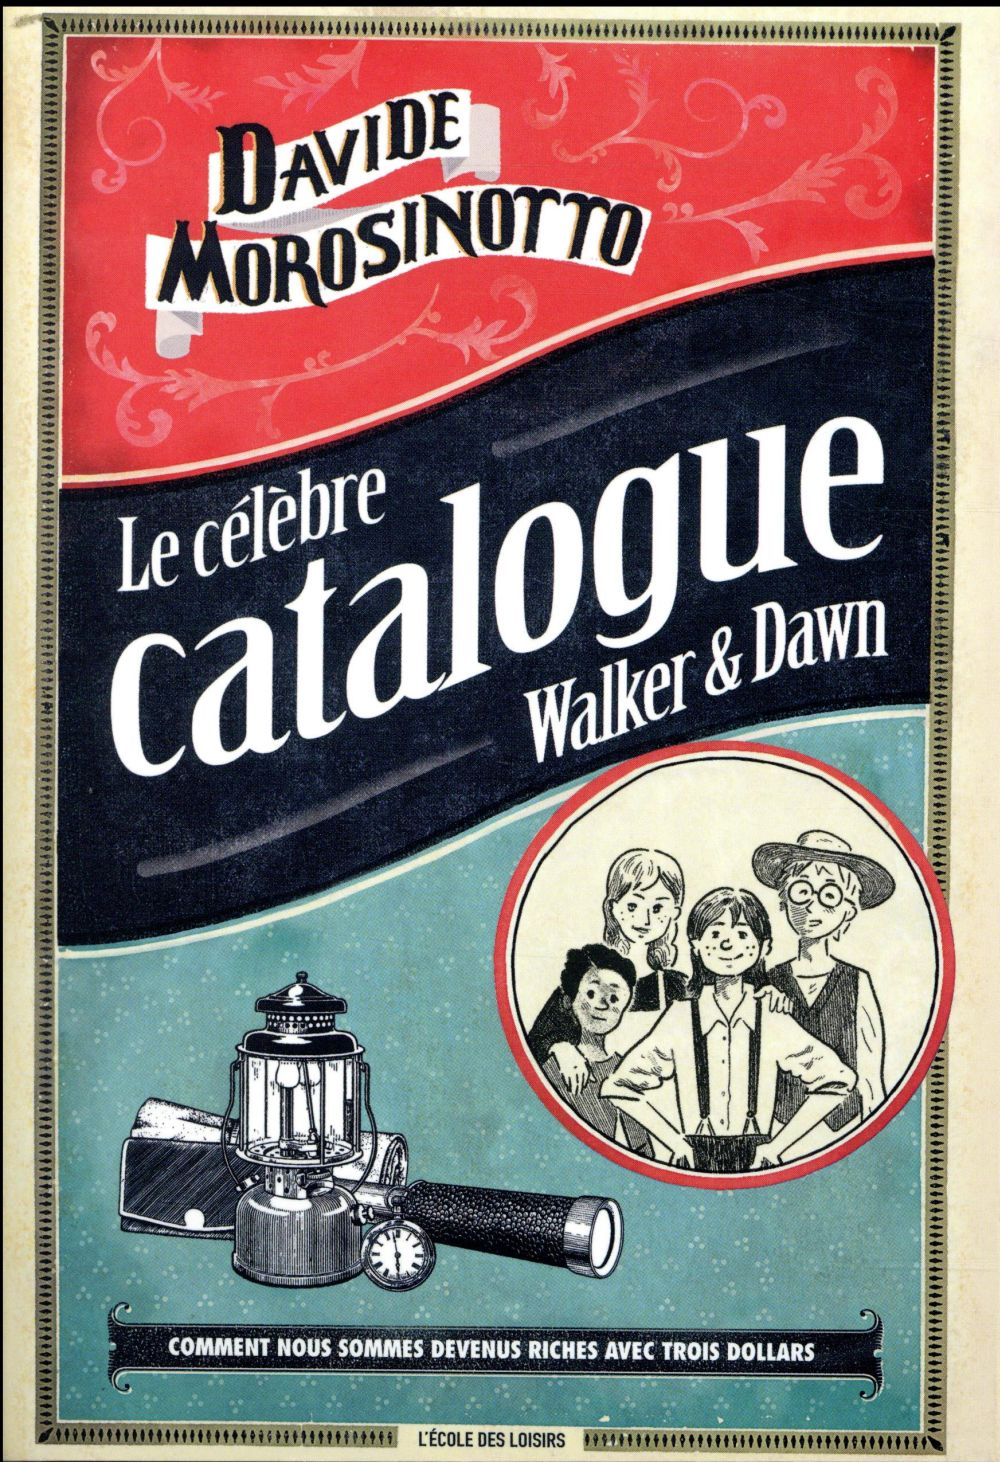 LE CELEBRE CATALOGUE DE WALKER ET DAWN